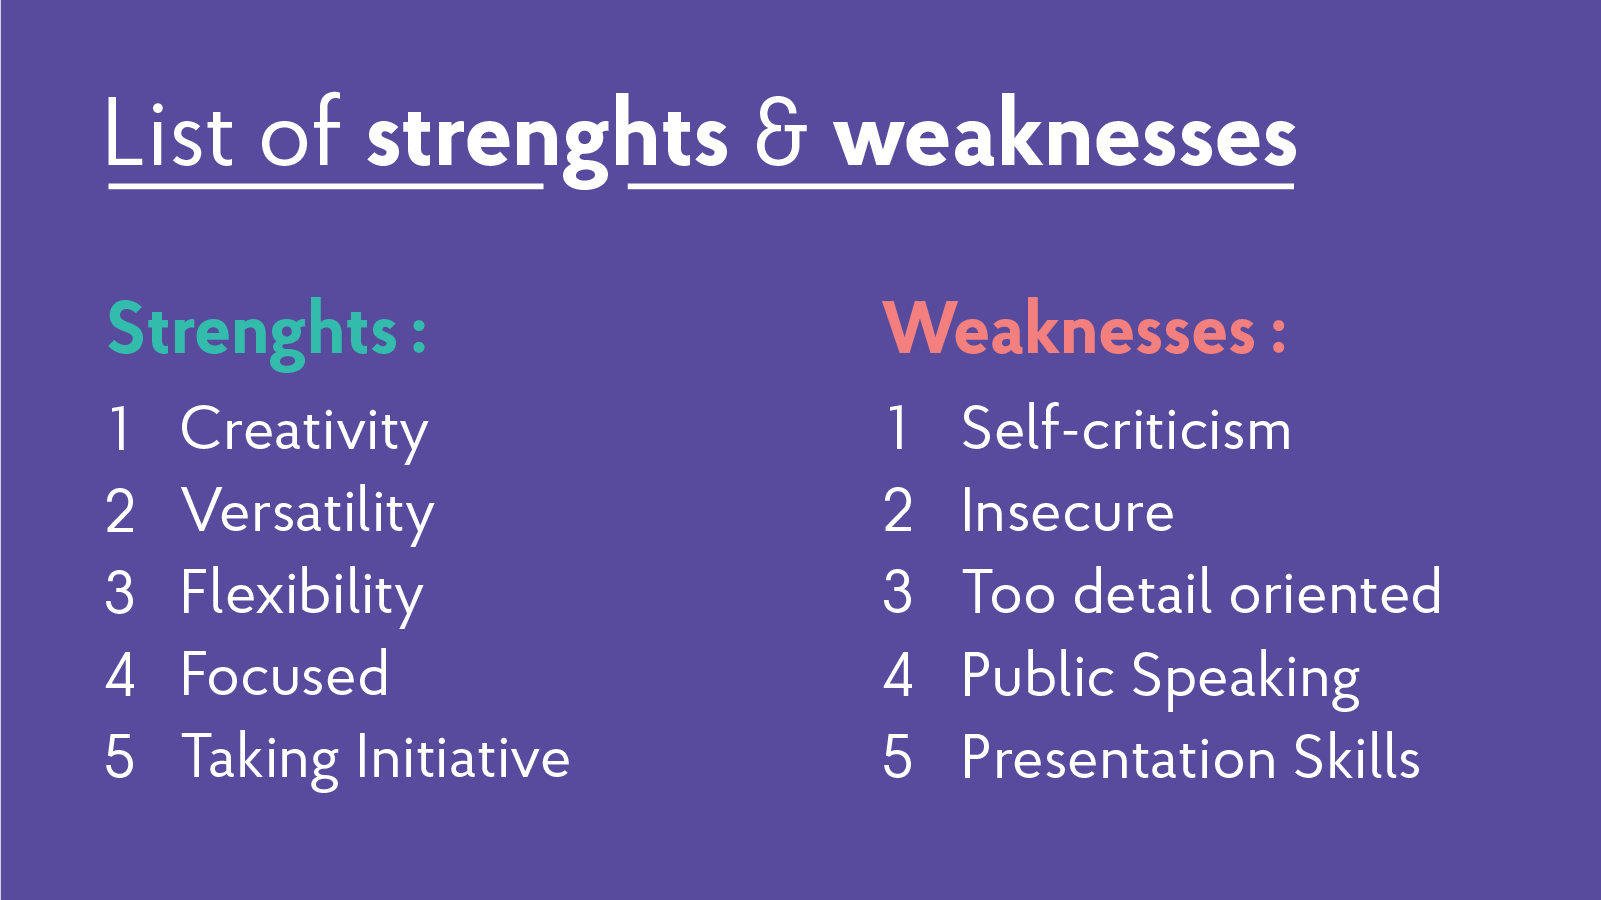 2019 strengths  u0026 weaknesses for job interviews   best